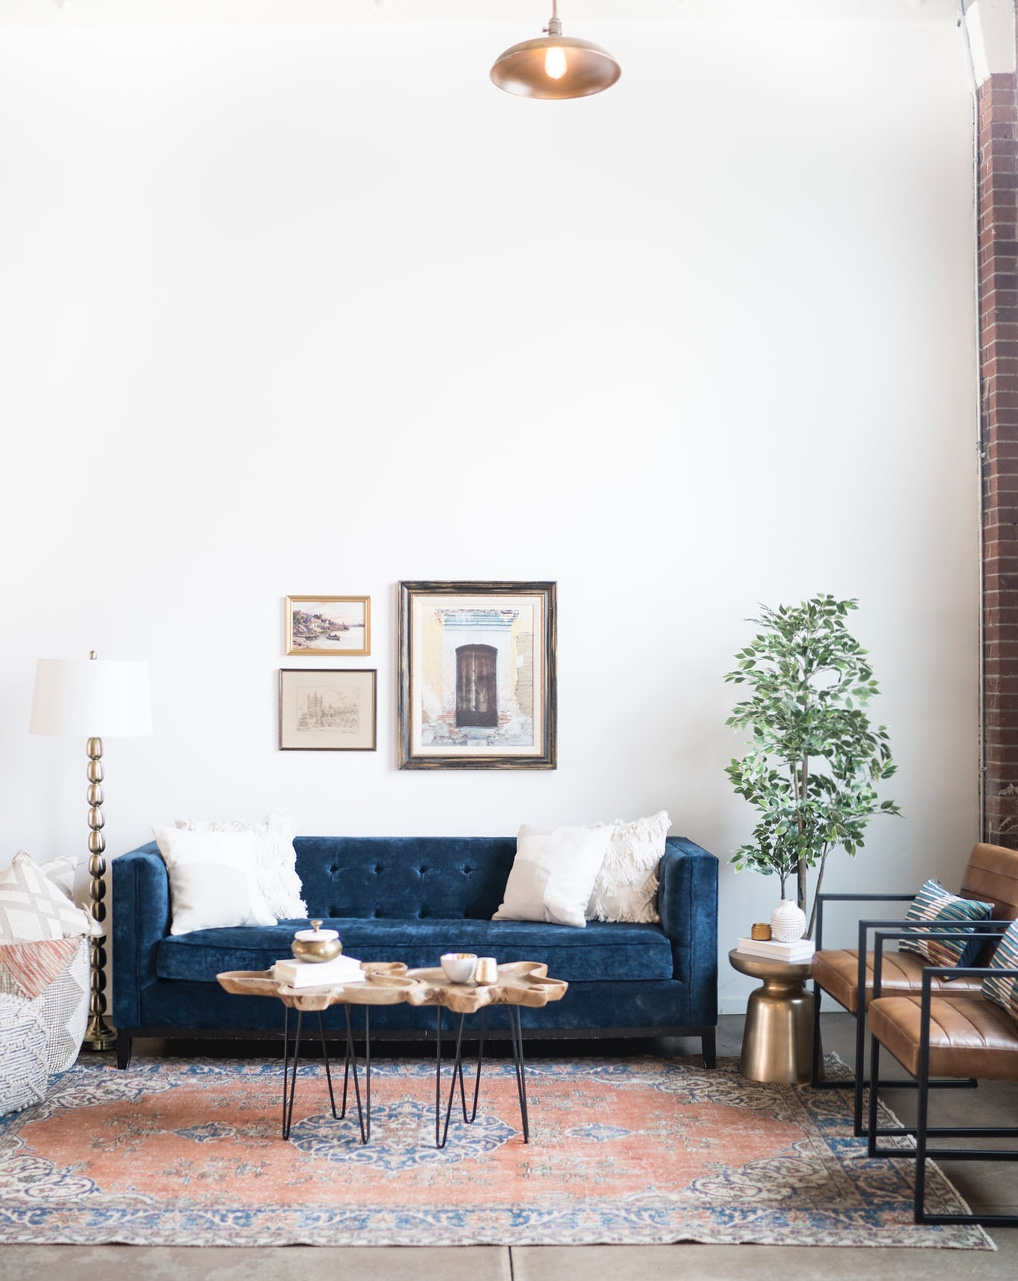 colour crush: terracotta and navy